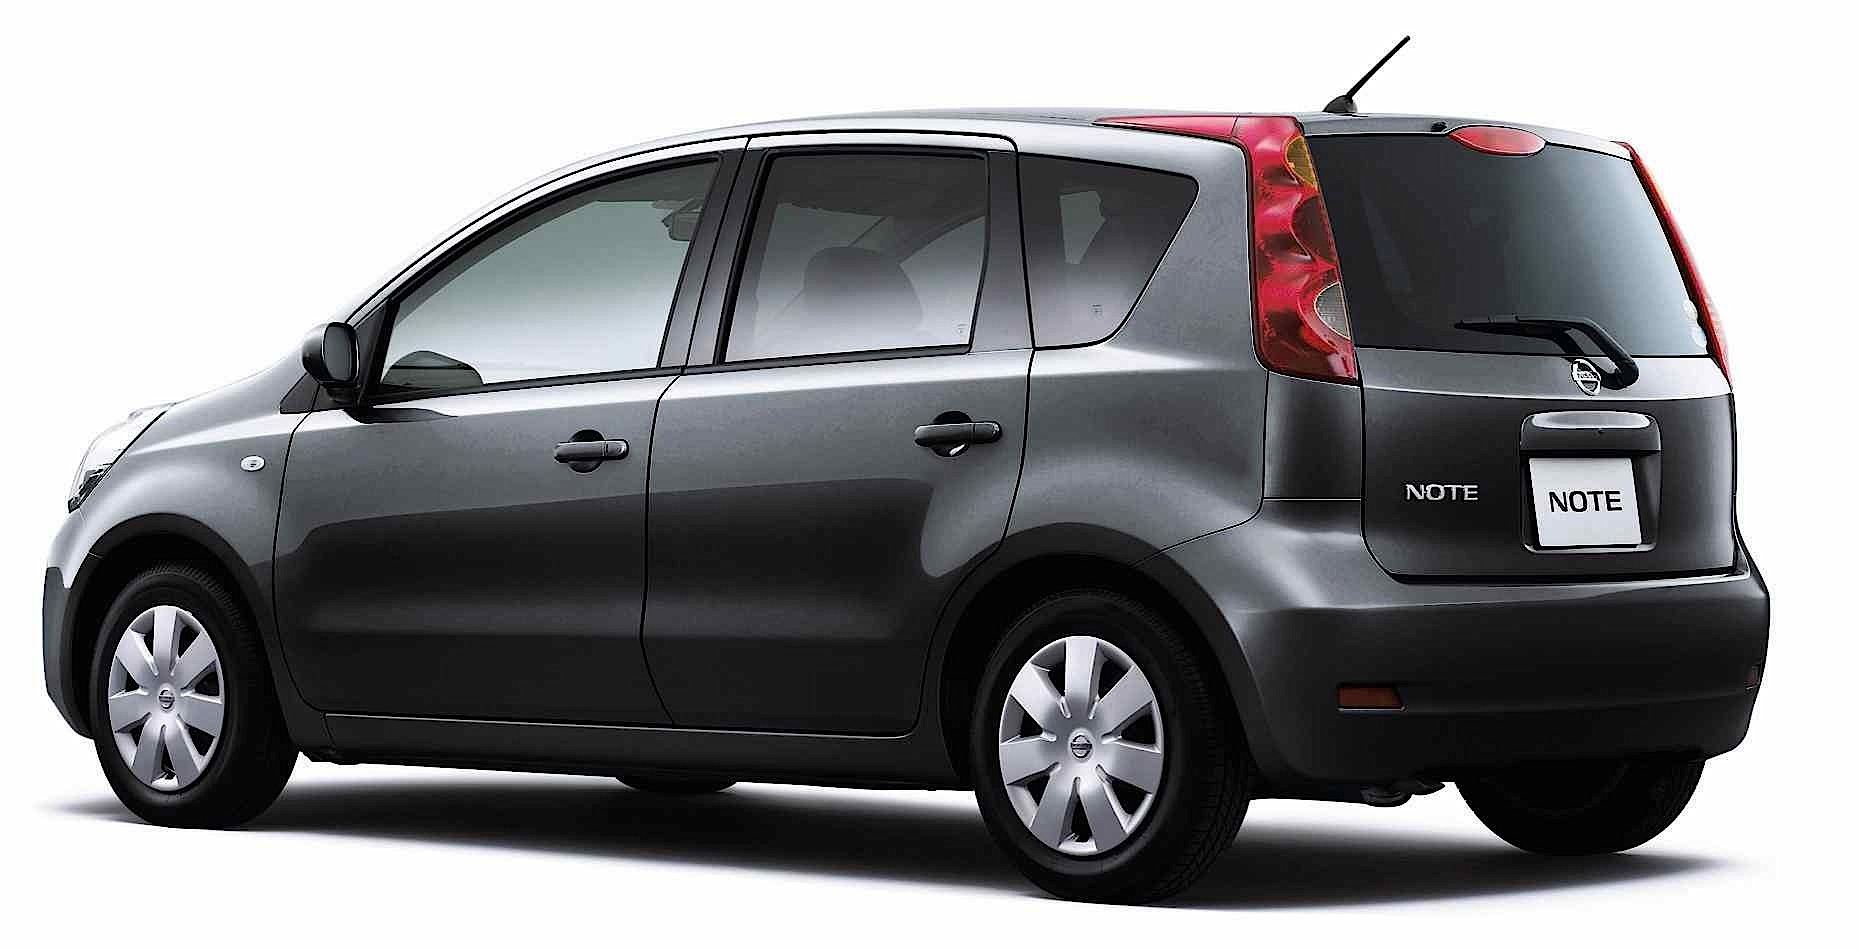 2008 Nissan Note #2